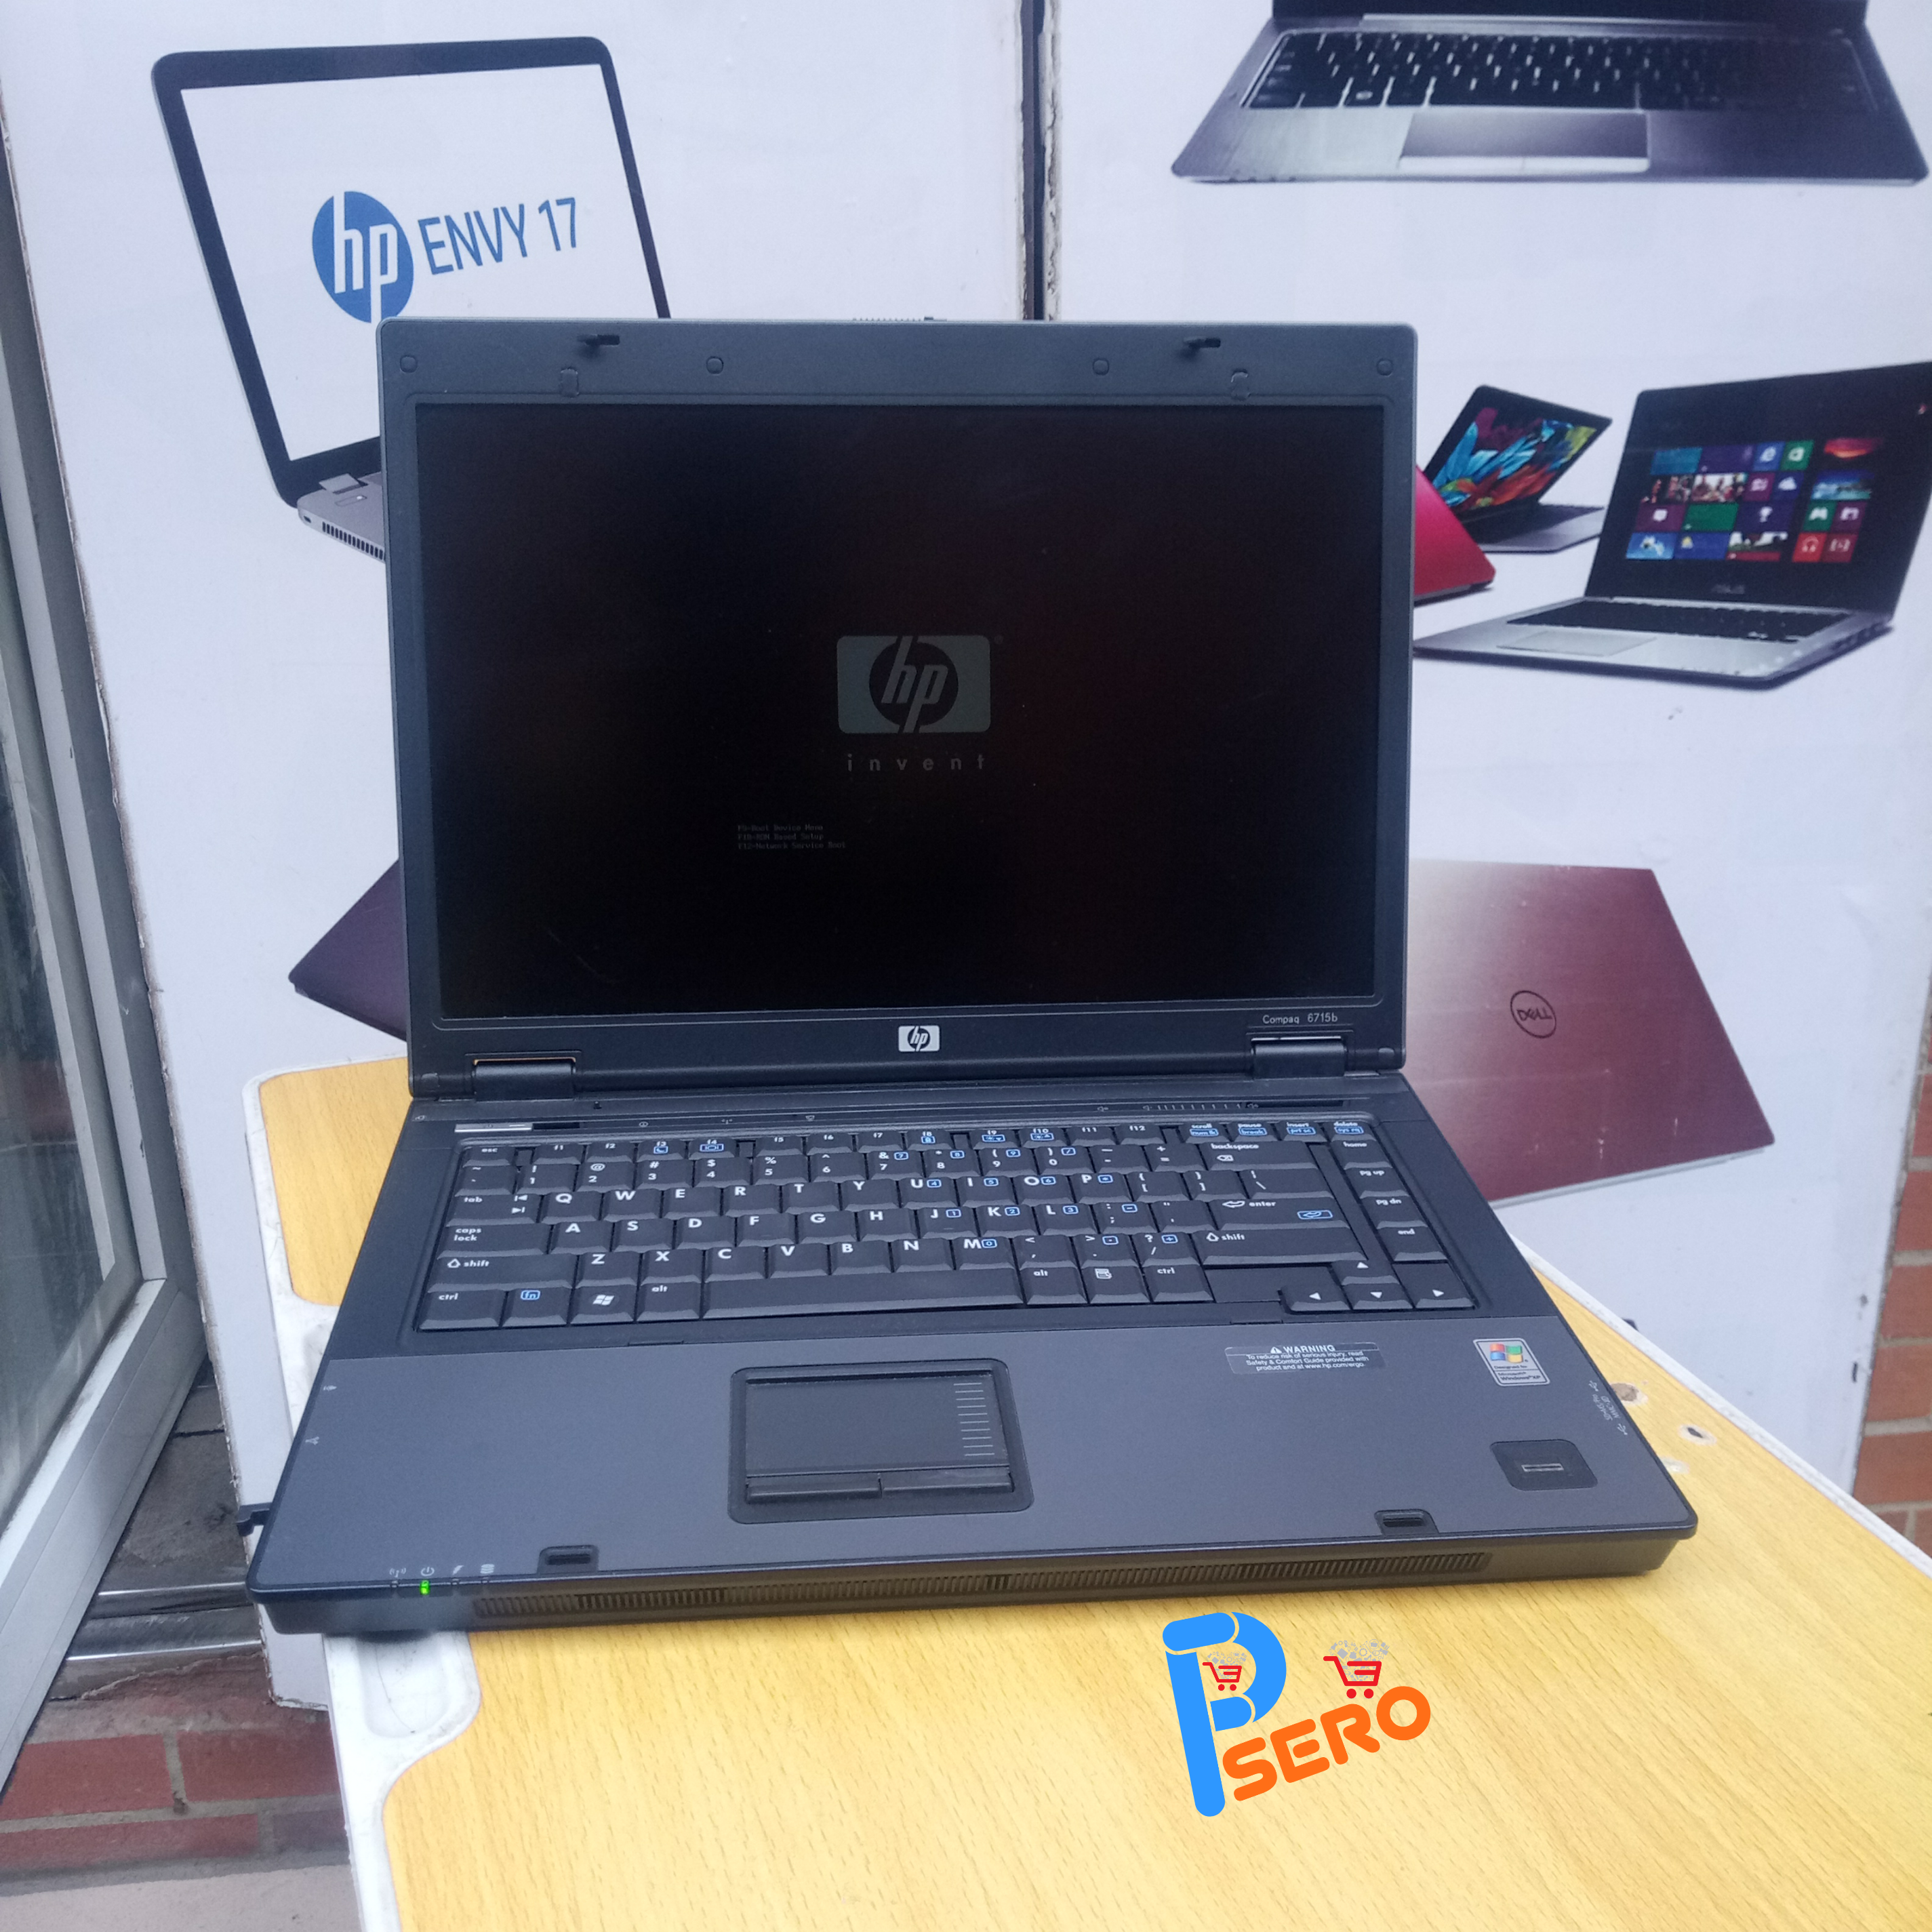 Uk Used: Hp Compaq 6715b with 3gb/80hdd